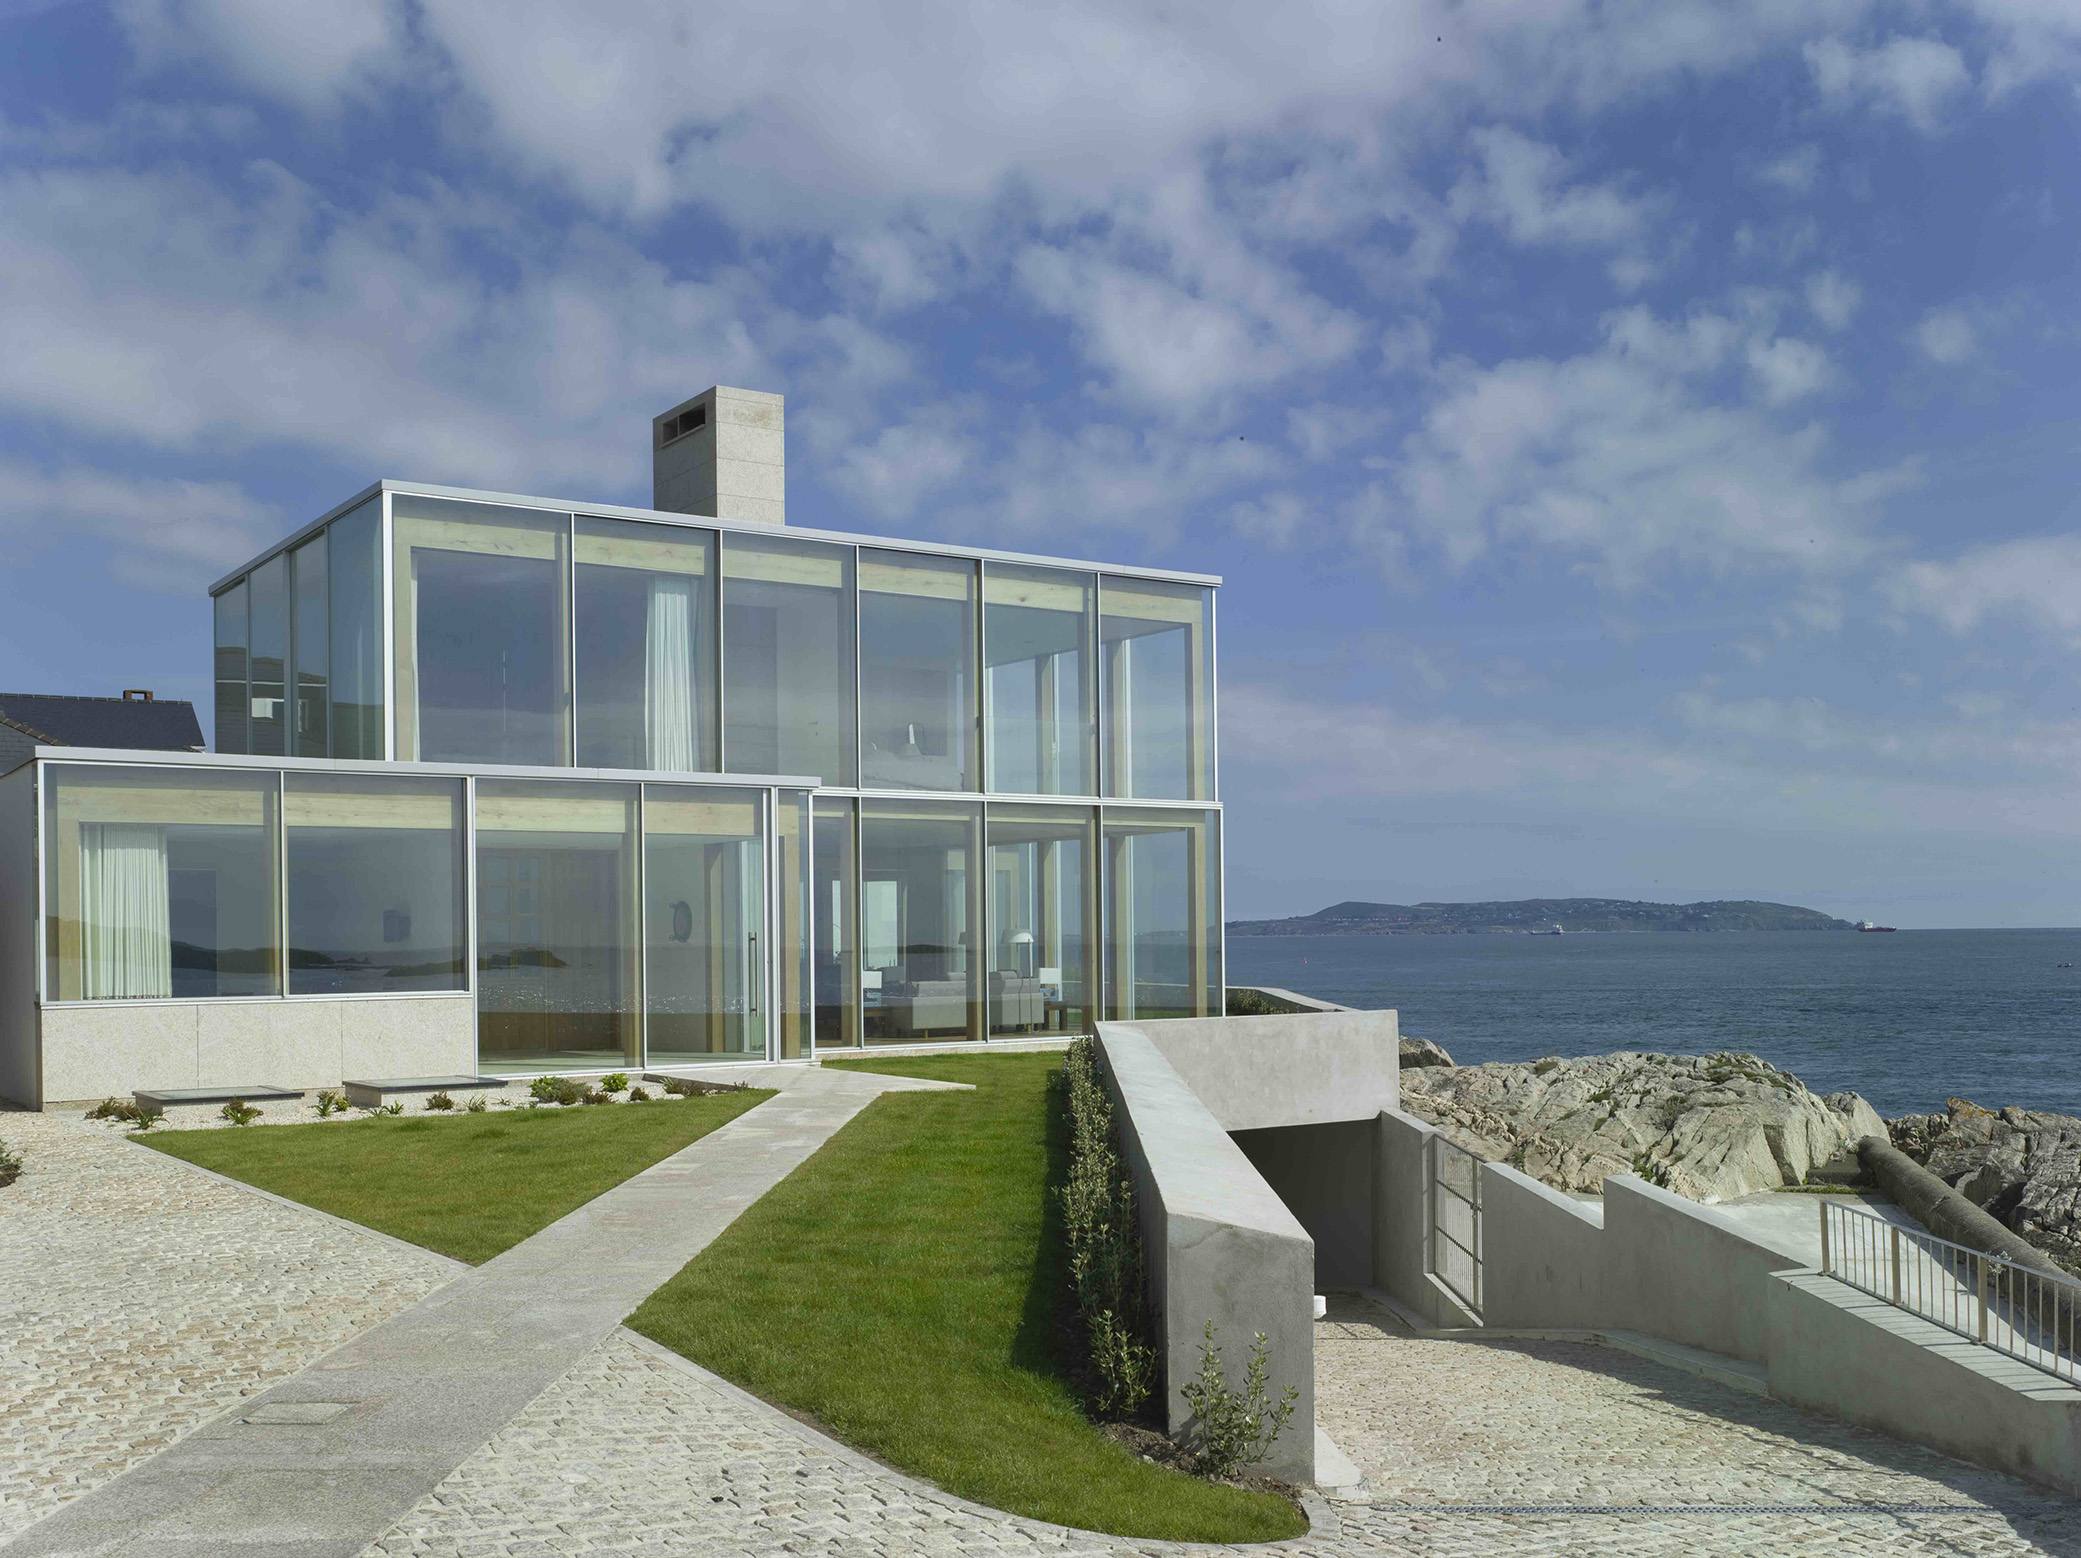 House by the Sea 1